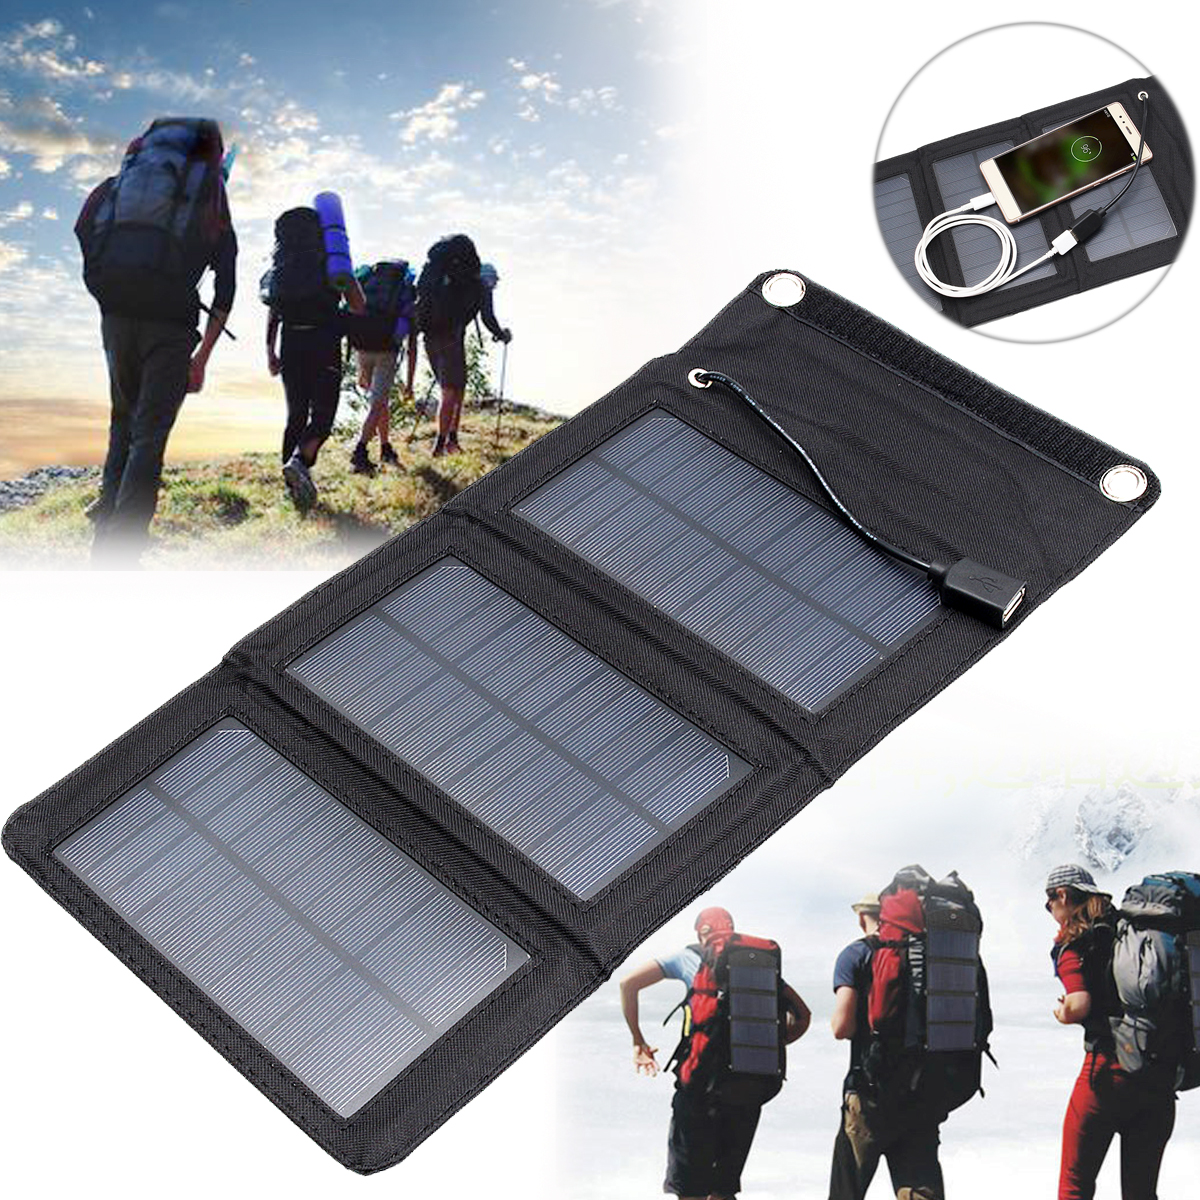 IPRee™ 5V 5W Portable Solar Panel Outdoor Travel Foldable Charger Power Bank With USB Port